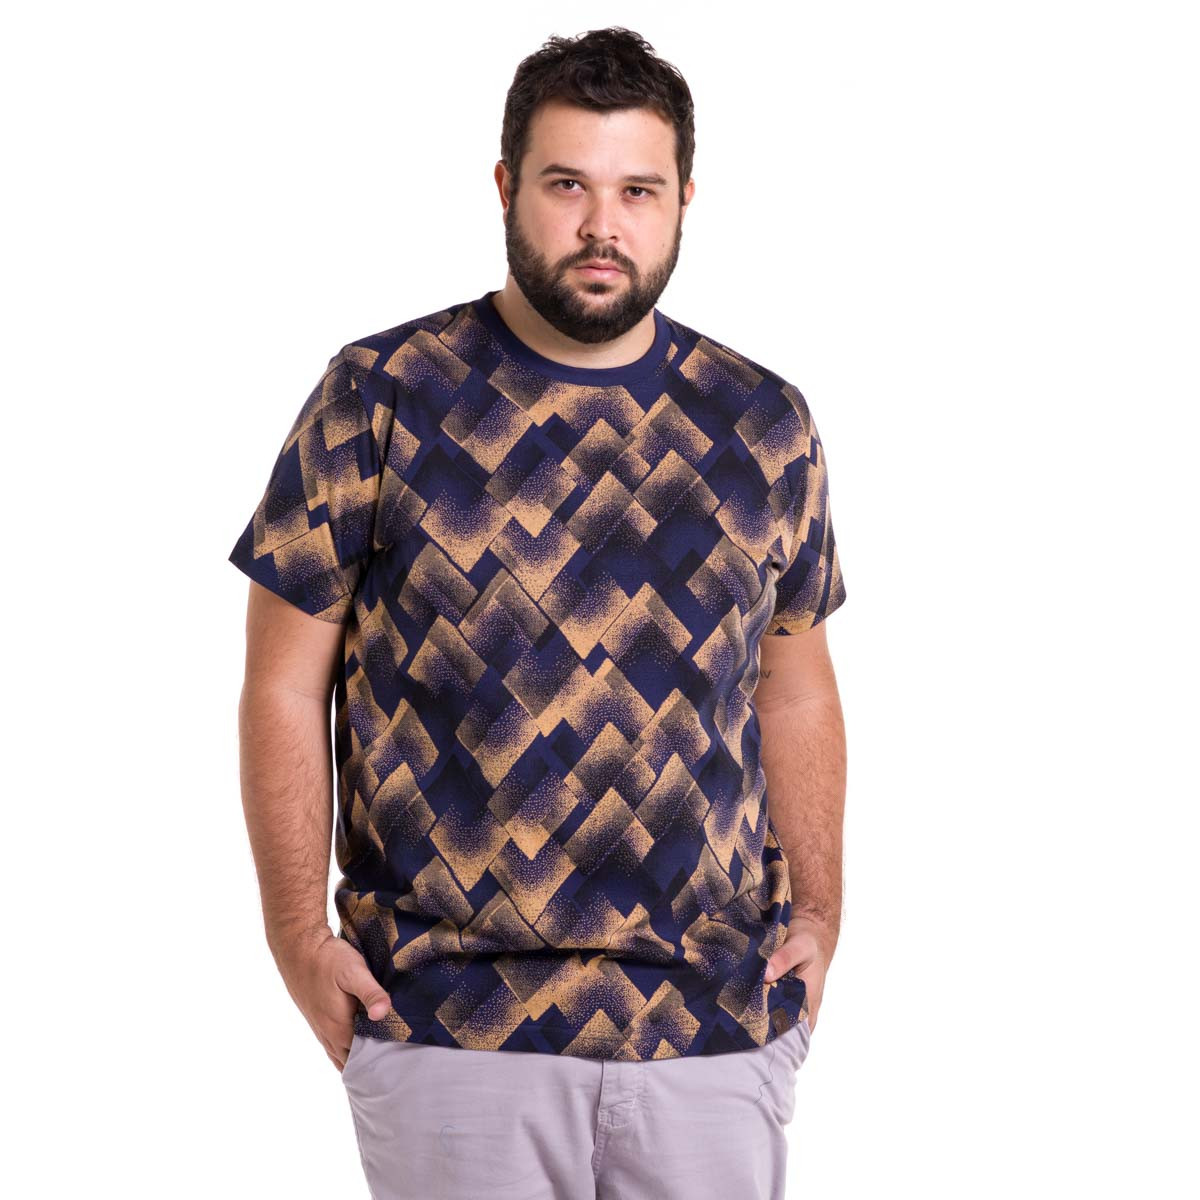 Camiseta Plus Size Masculina Diamond Dust